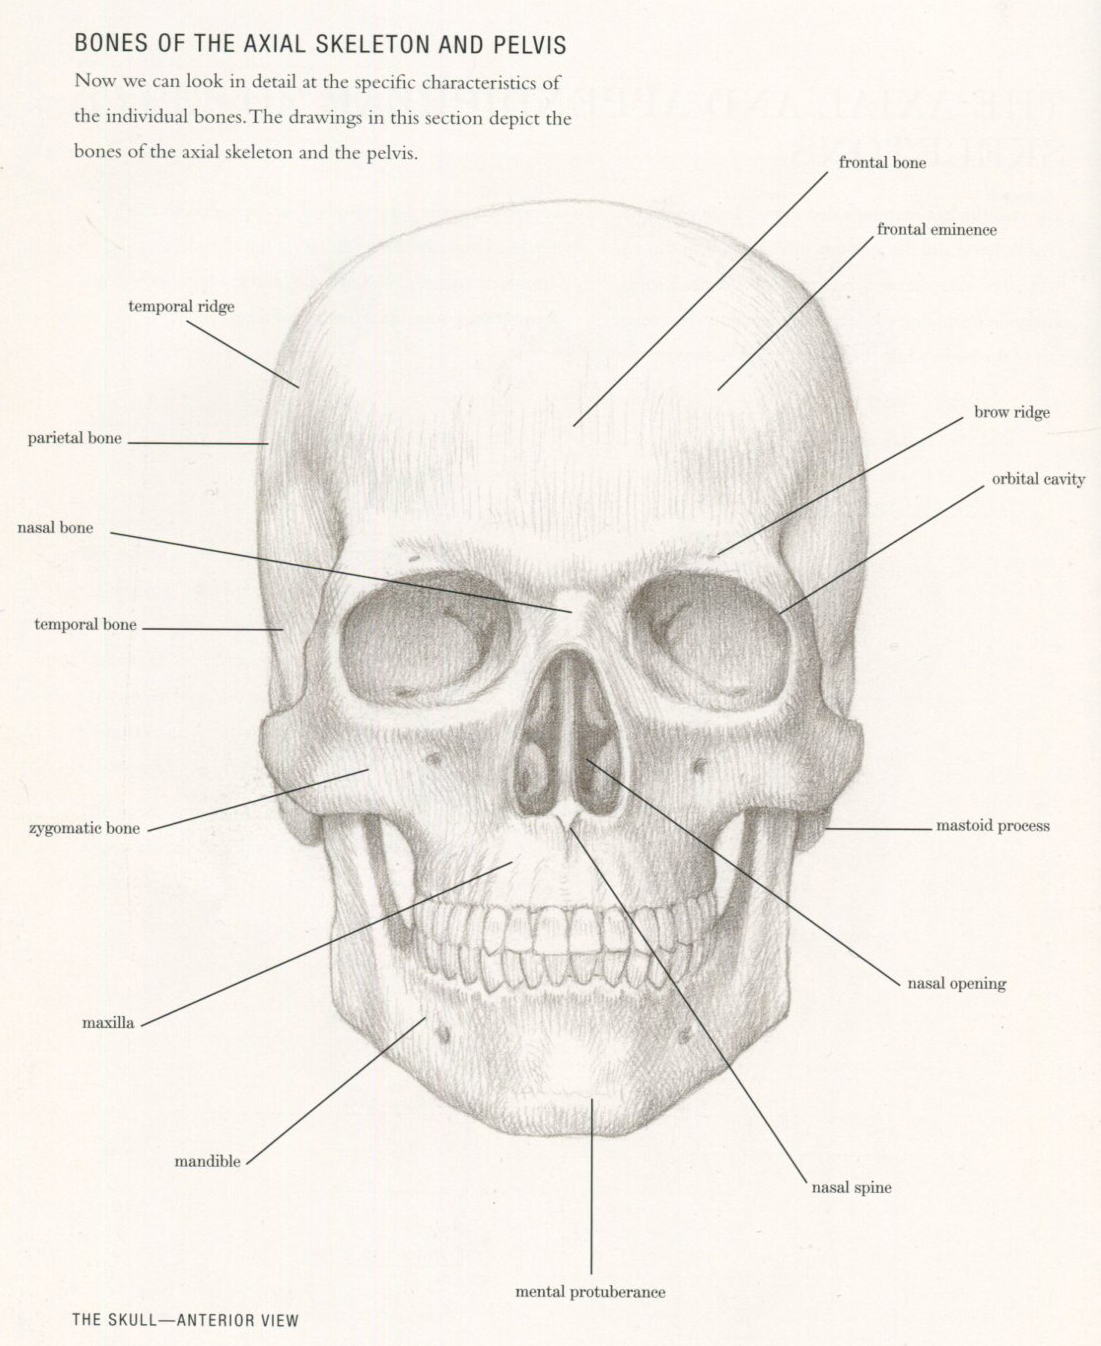 hight resolution of all images taken from basic human anatomy by roberto osti